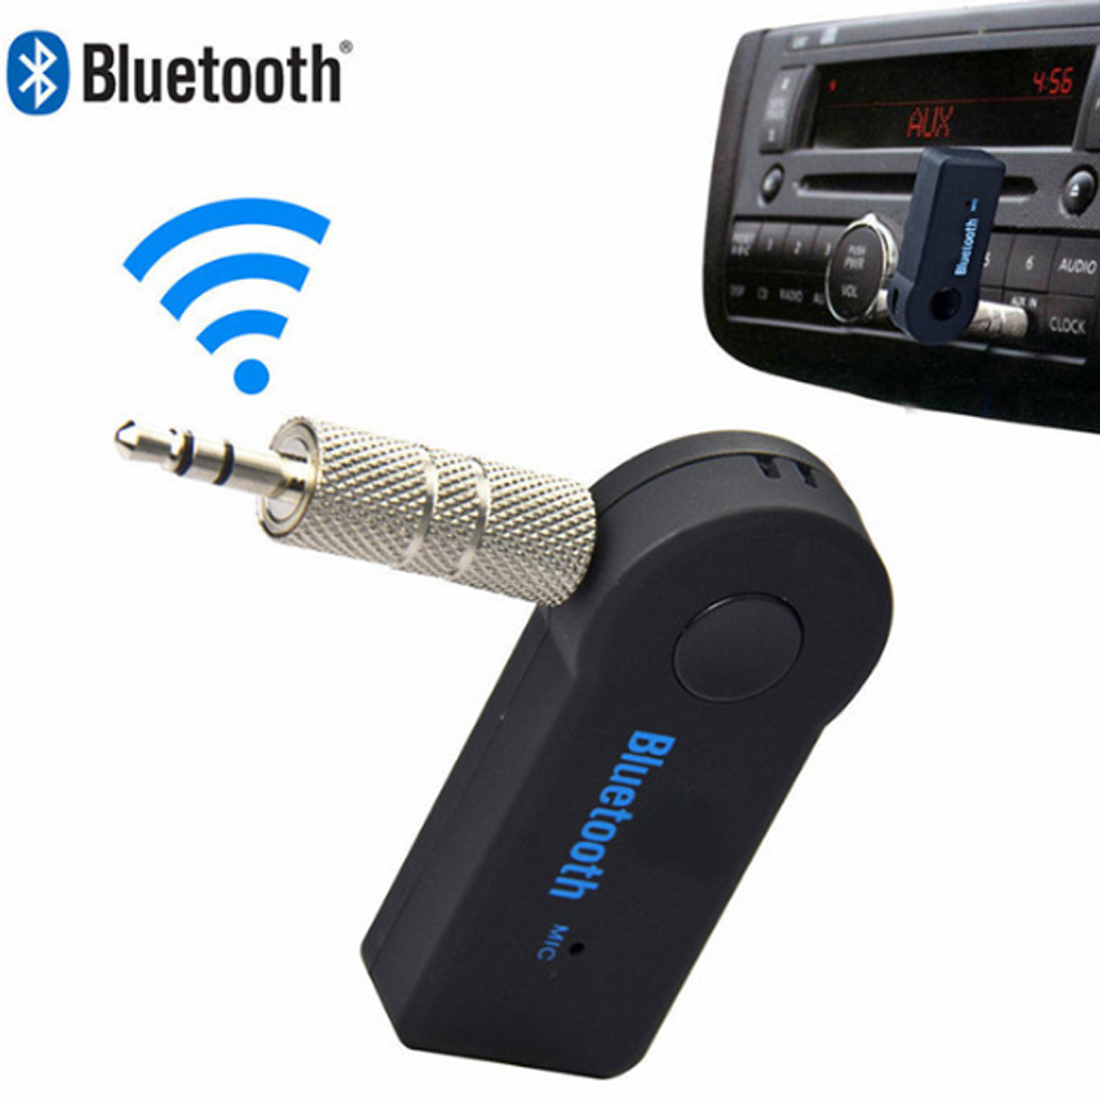 Marsnaska Handsfree Bluetooth 3.0 Car Kit Wireless 3.5mm Streaming A2DP Car Auto Audio Music Receiver Video Player Function Micr ...